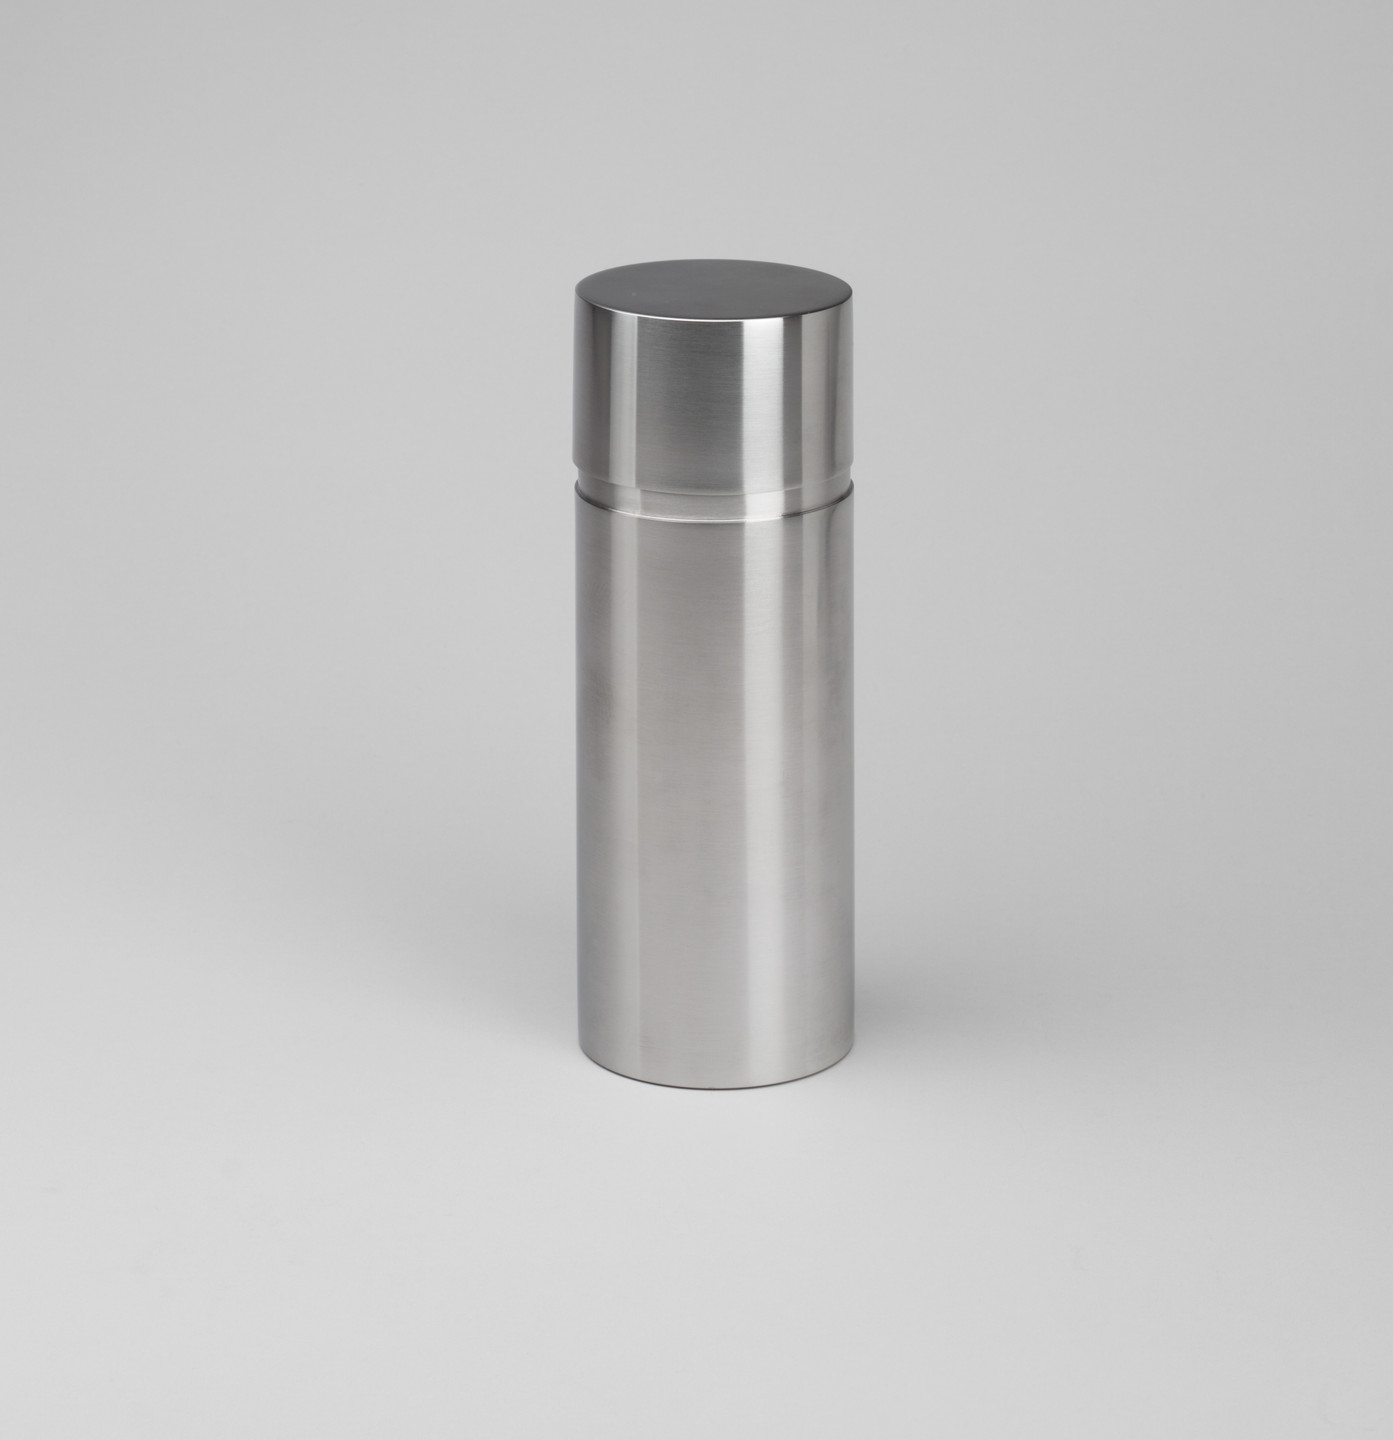 Arne Jacobsen. Cylinda Cocktail Shaker. 1964